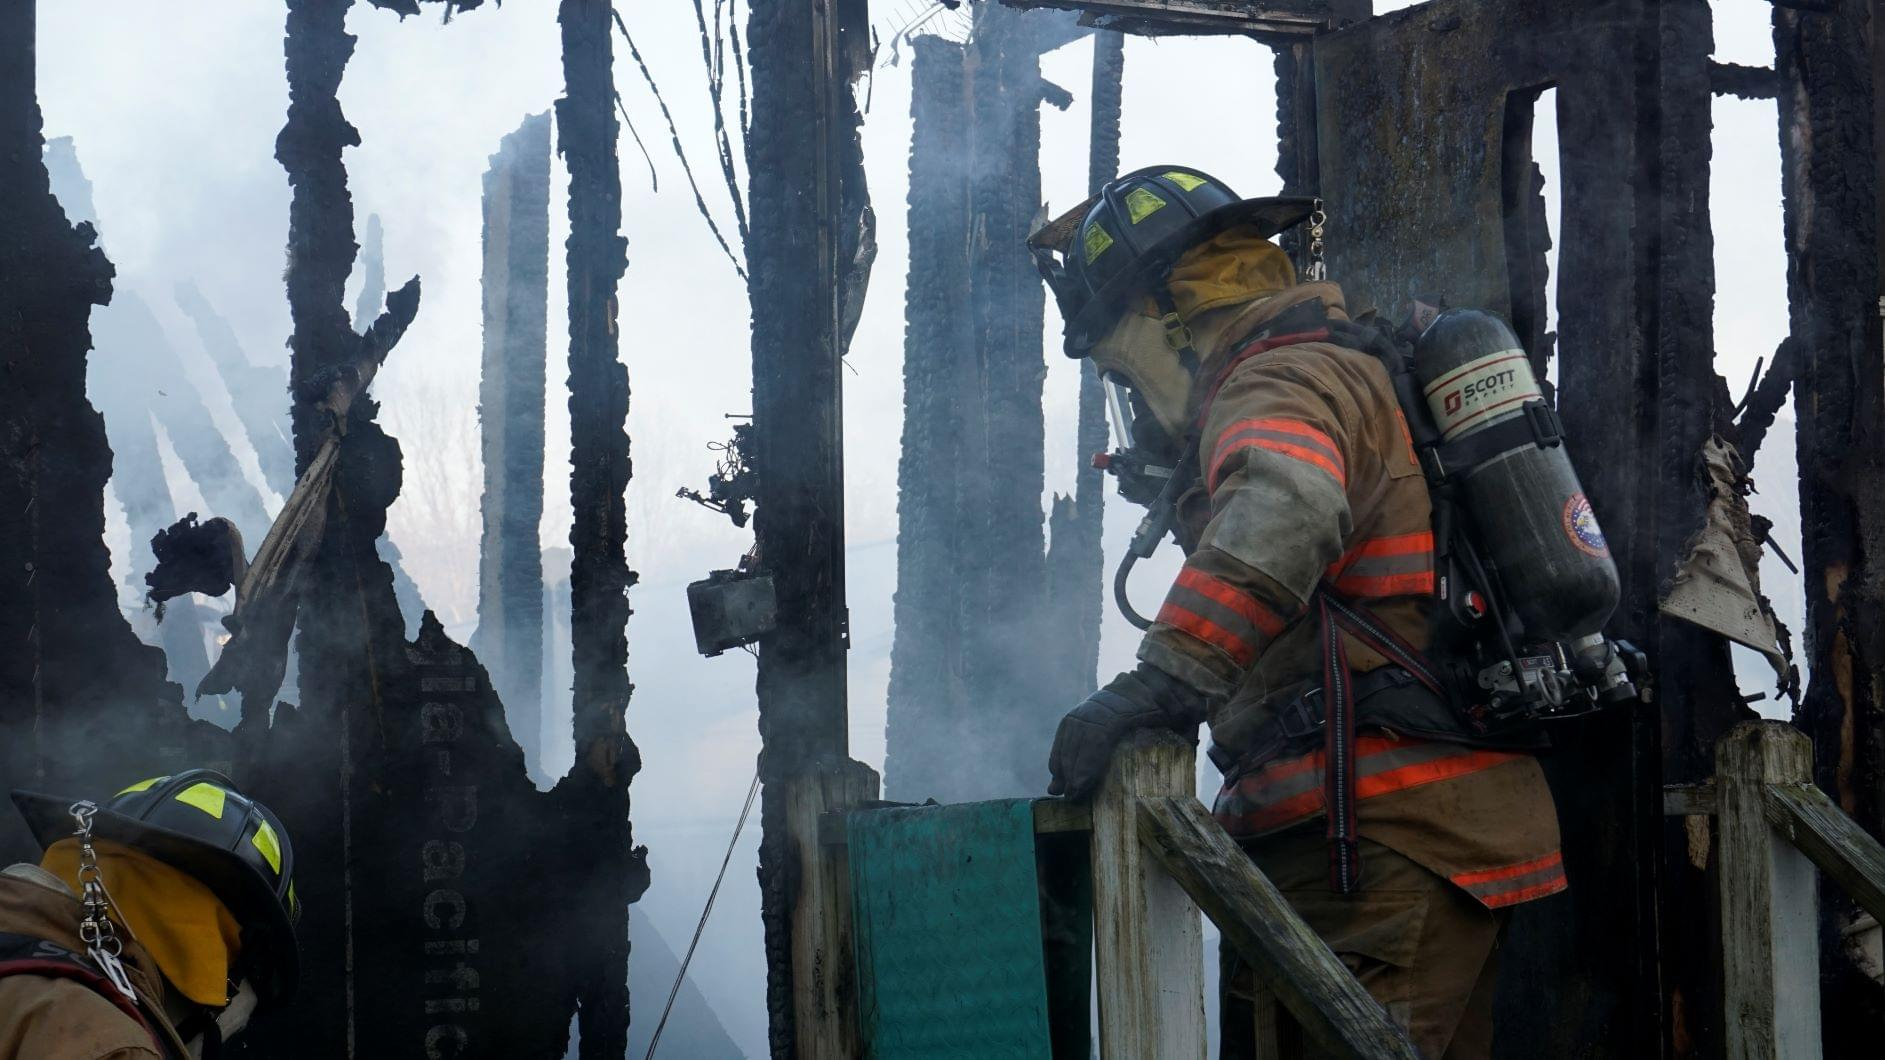 Duplin County Mobile Home Goes Up In Flames (PHOTO GALERY)